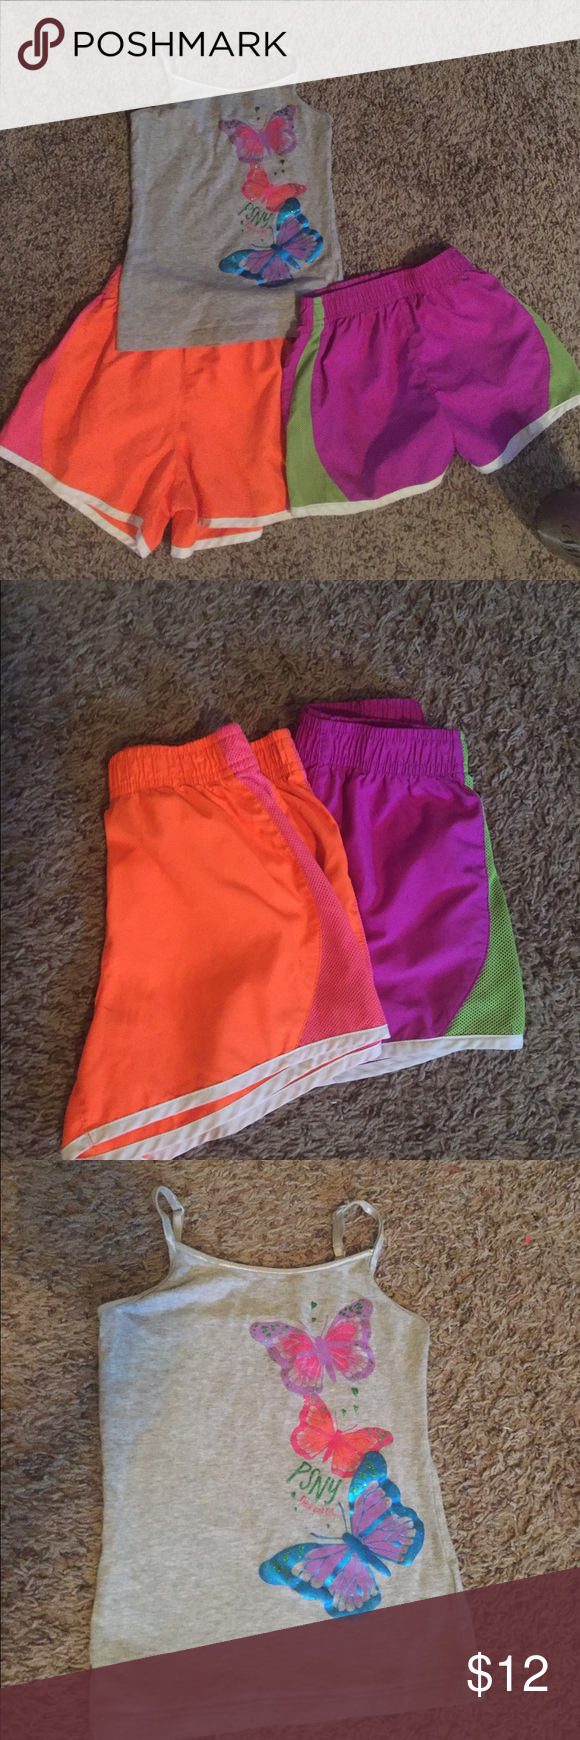 Cami and shorts outfit plus extra pair shorts P S Aeropostale brand size 6 cami style too with cute butterfly front design! Two pair Children's Place size 7/8 work out style shorts. All preloved but in Good condition! No rips tears or stains. Children's Place Bottoms